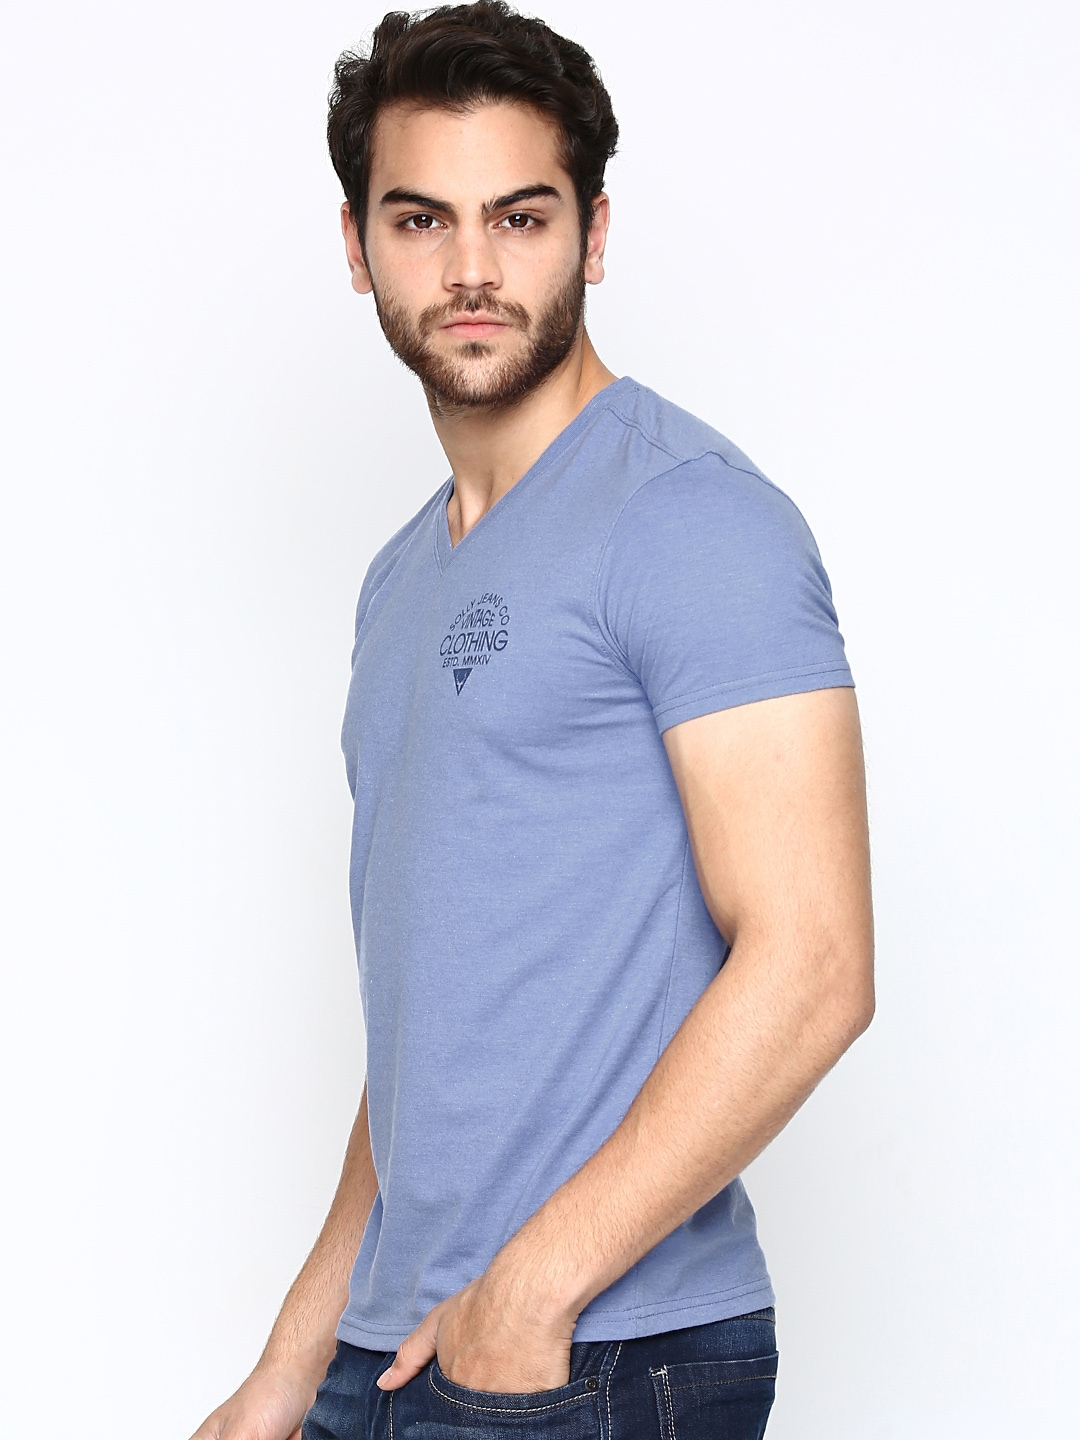 Shop for Sale & Clearance Men's Clothing & Apparel | Dillard's at sansclicker.ml Visit sansclicker.ml to find clothing, accessories, shoes, cosmetics & more. The Style of Your Life.